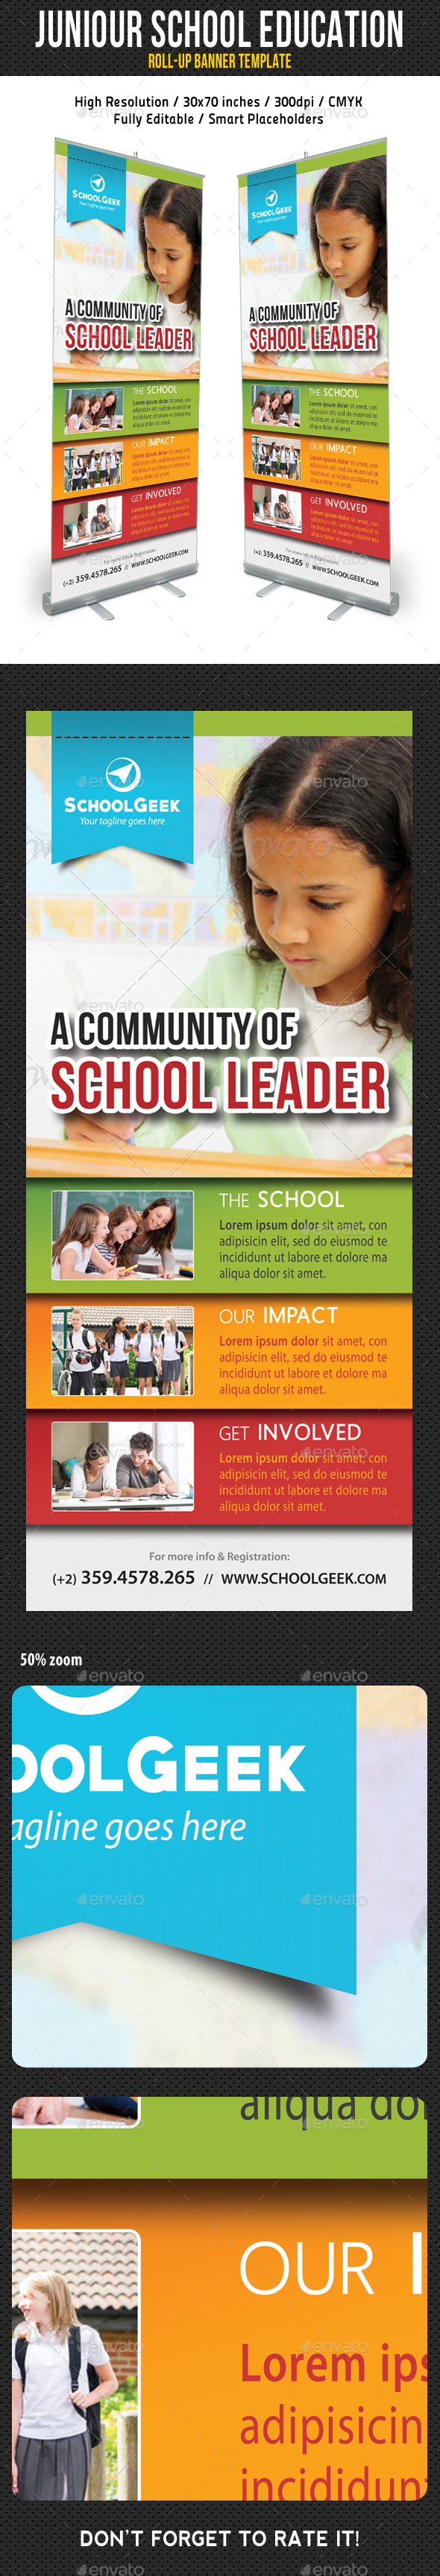 School Education Roll-Up Banner